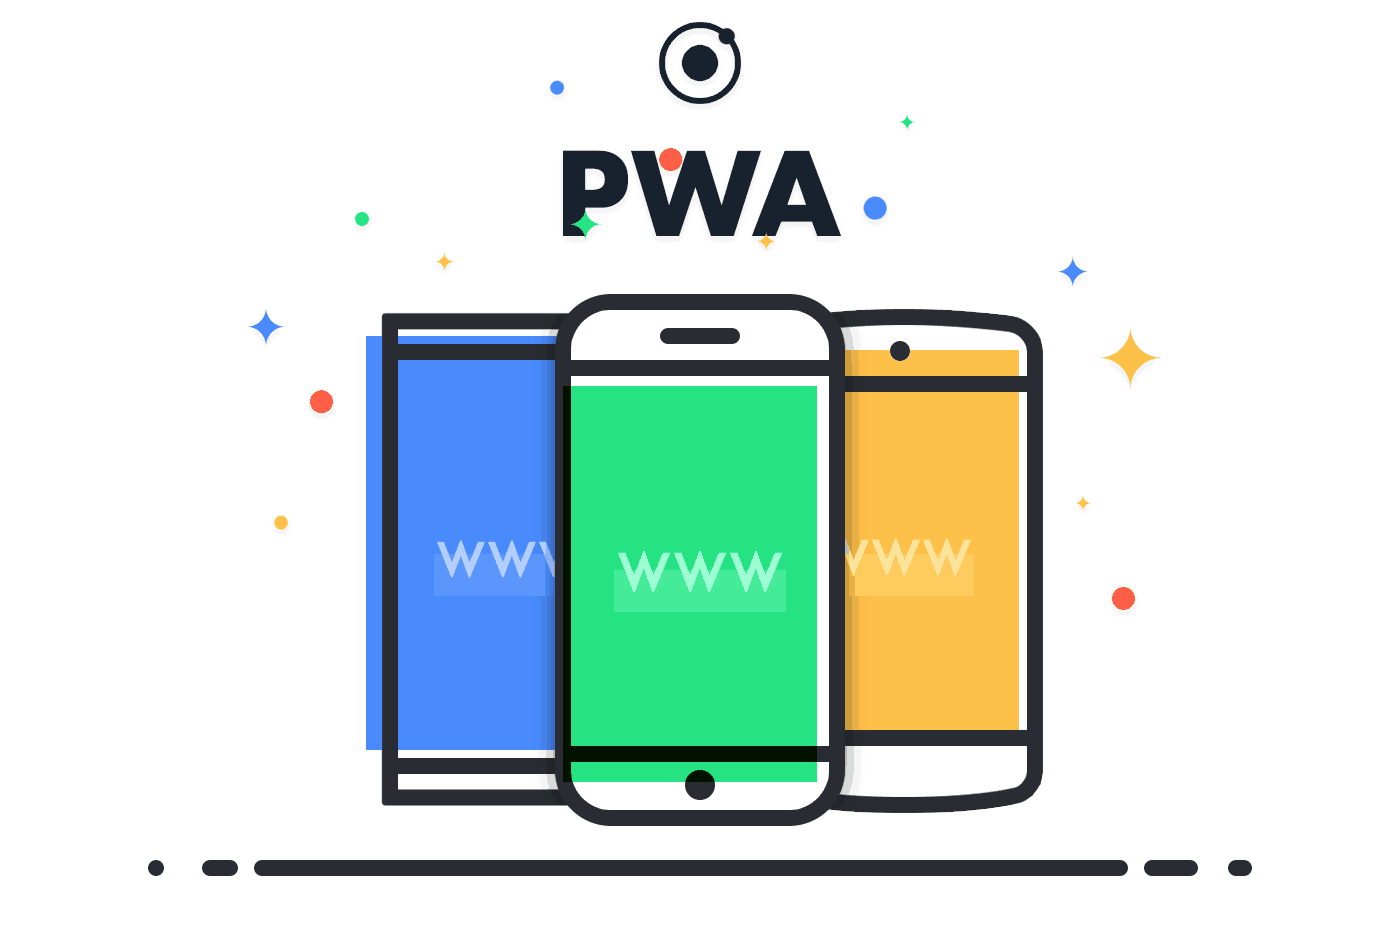 What are PWA or progressive web apps?